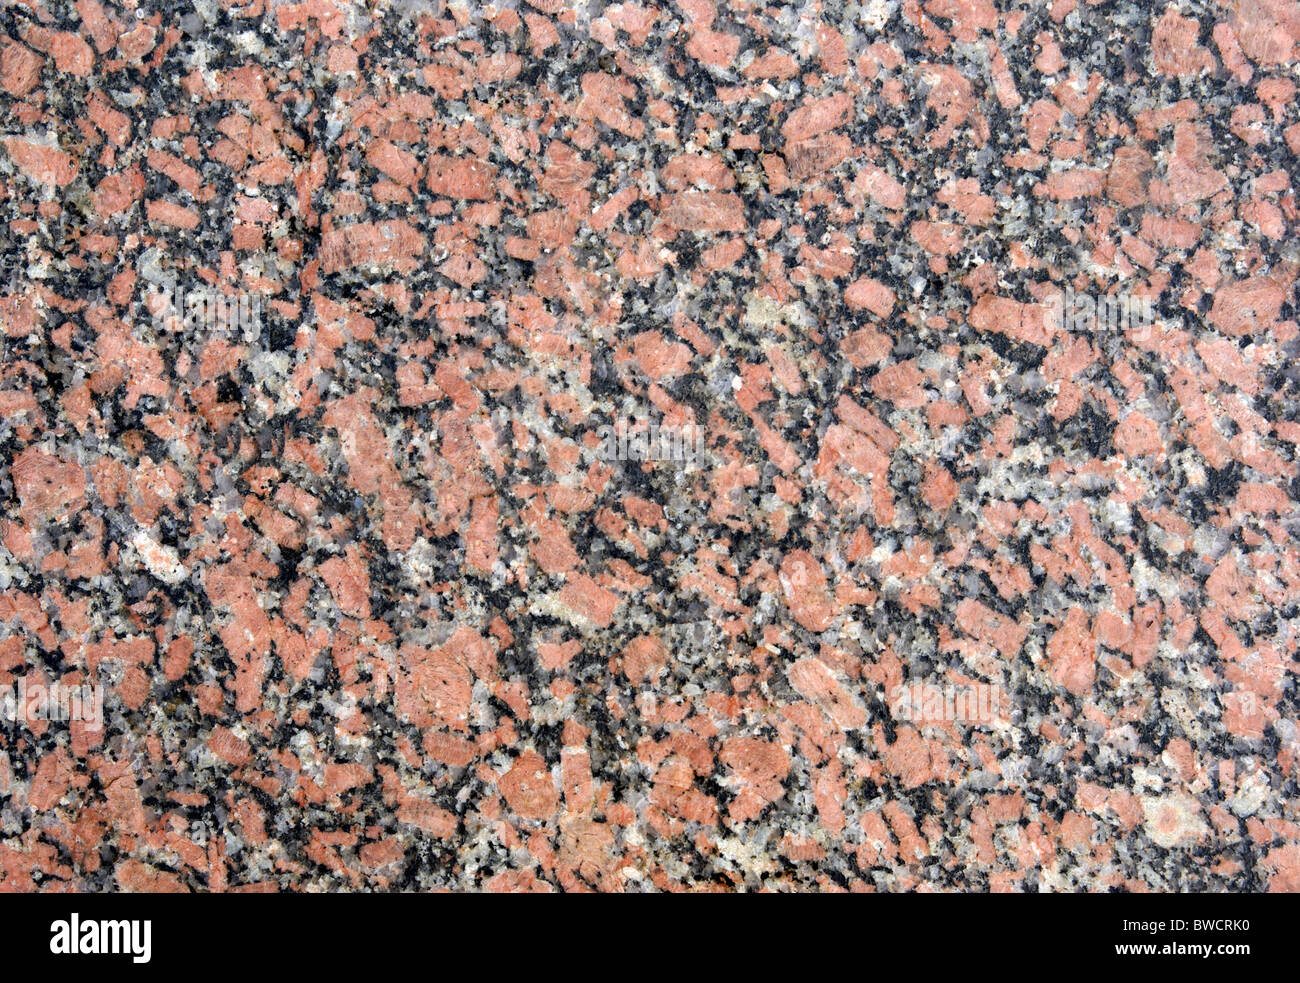 Abstract Red And Black Marble Wall Textured Background Stock Photo Alamy